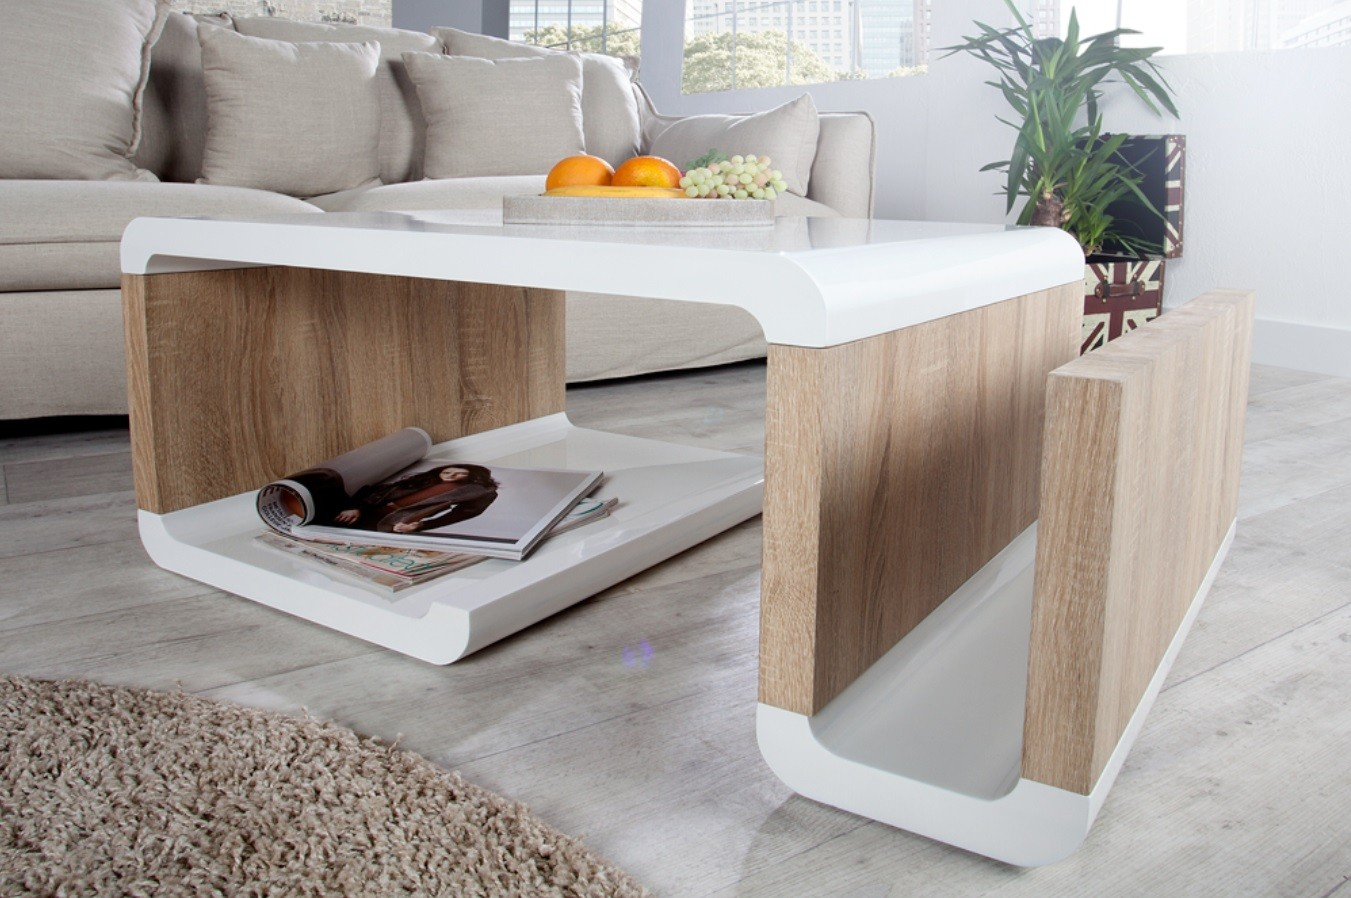 table basse laqu blanc et bois 6 id es de d coration. Black Bedroom Furniture Sets. Home Design Ideas